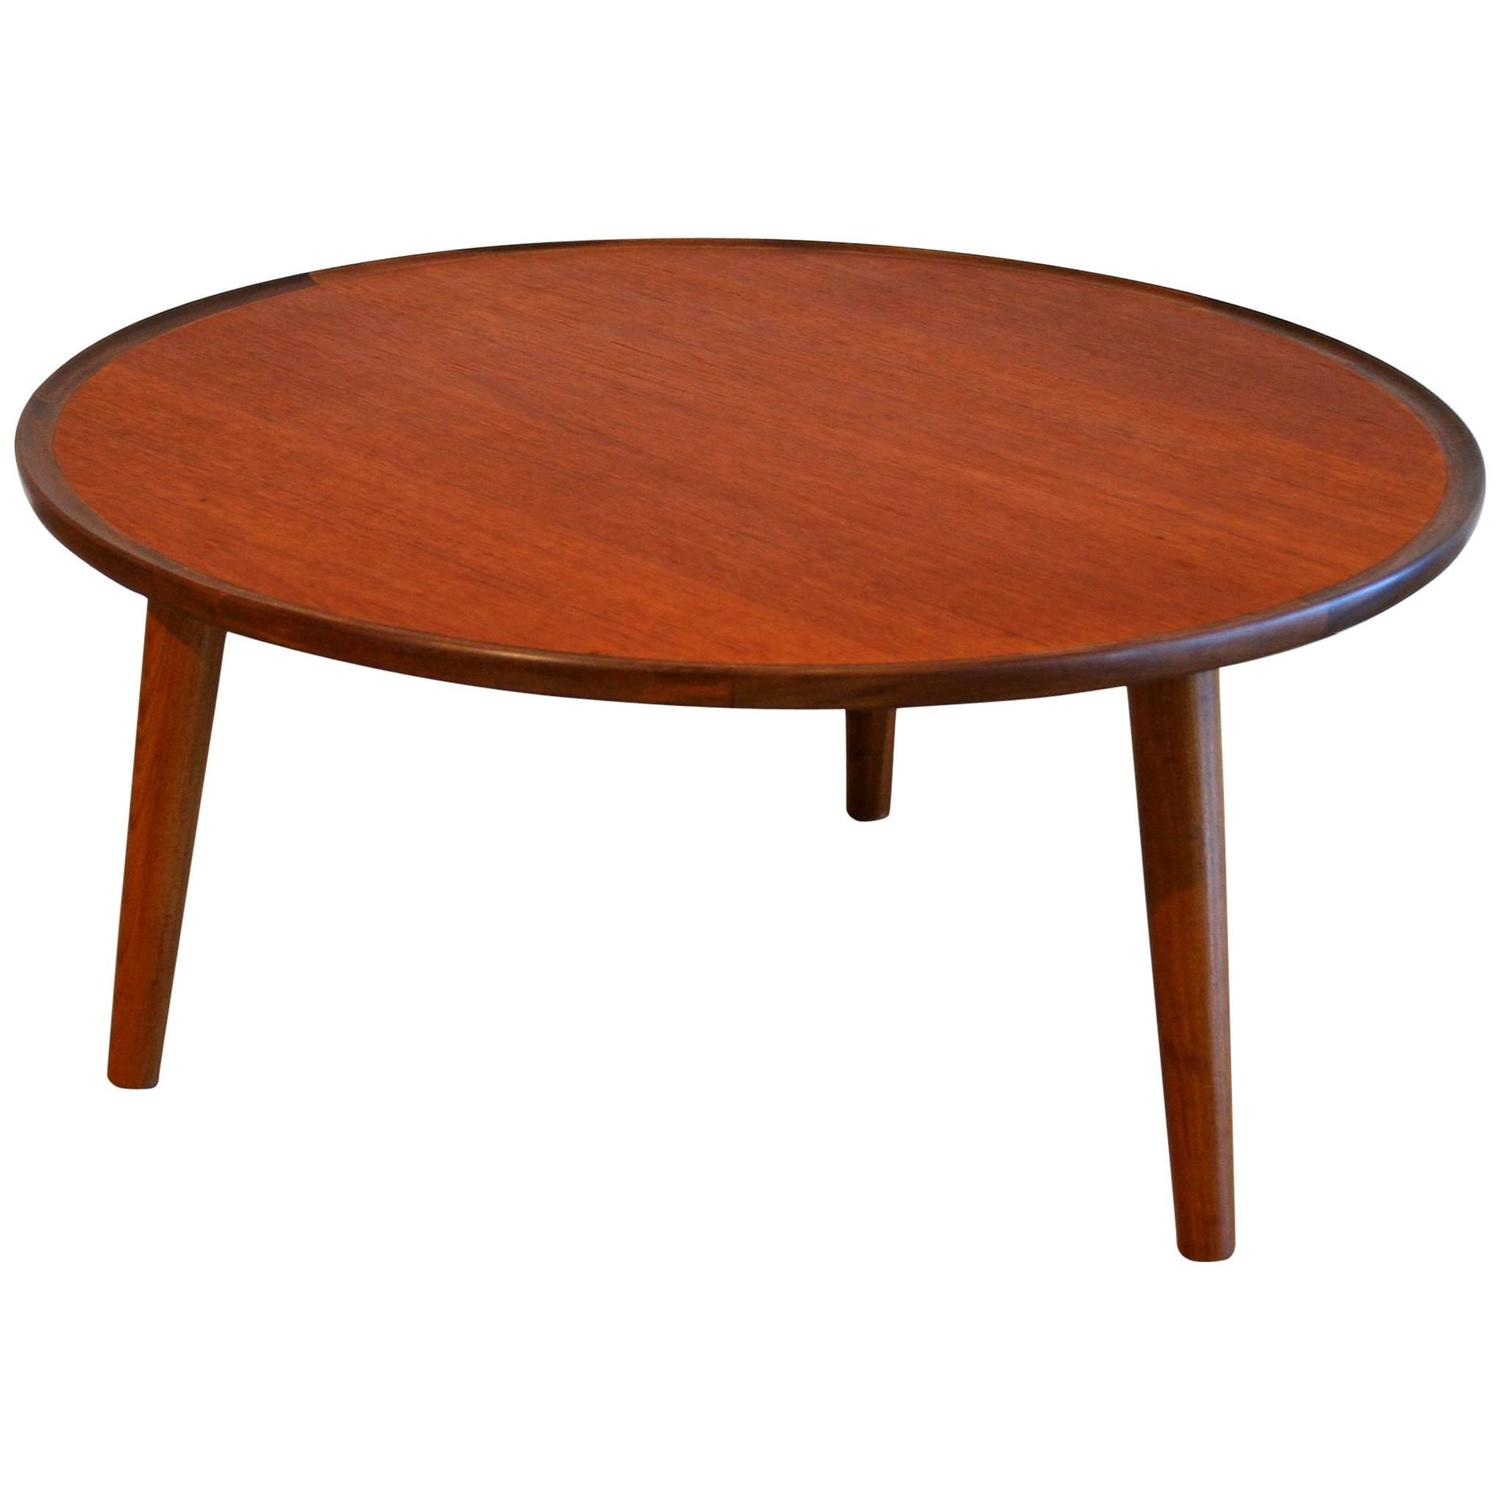 Old Teak Coffee Table: Vintage Danish Teak Round Coffee Table By Peter Hvidt At